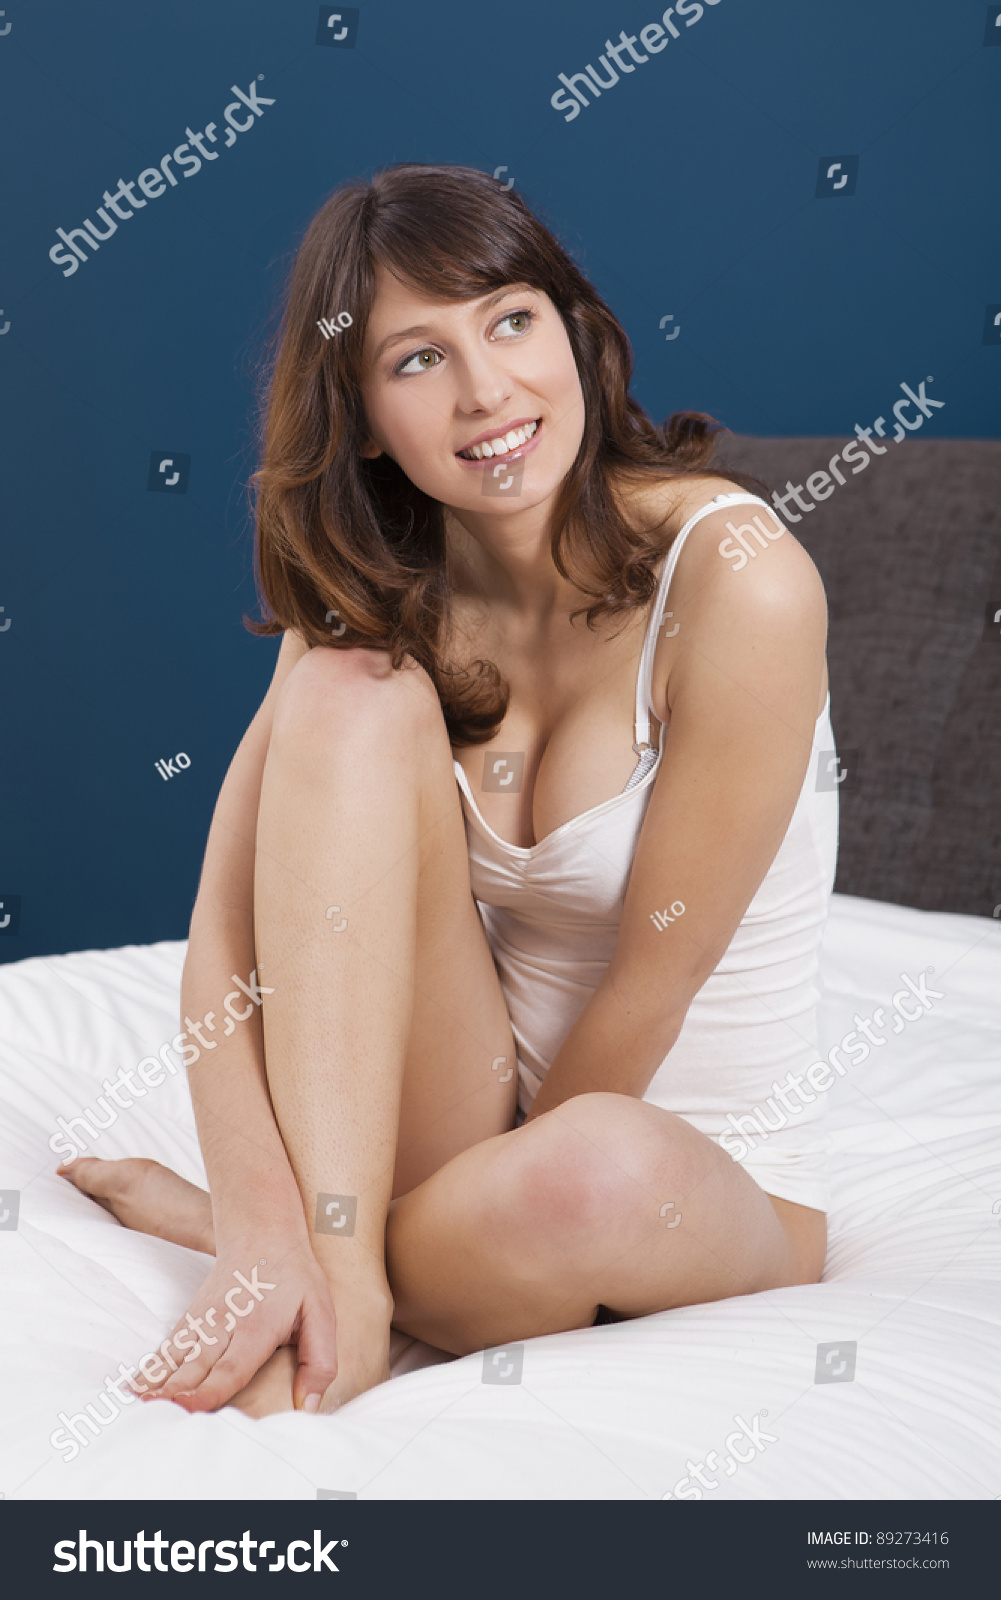 beautiful girls underwear sitting on bed stock photo (edit now